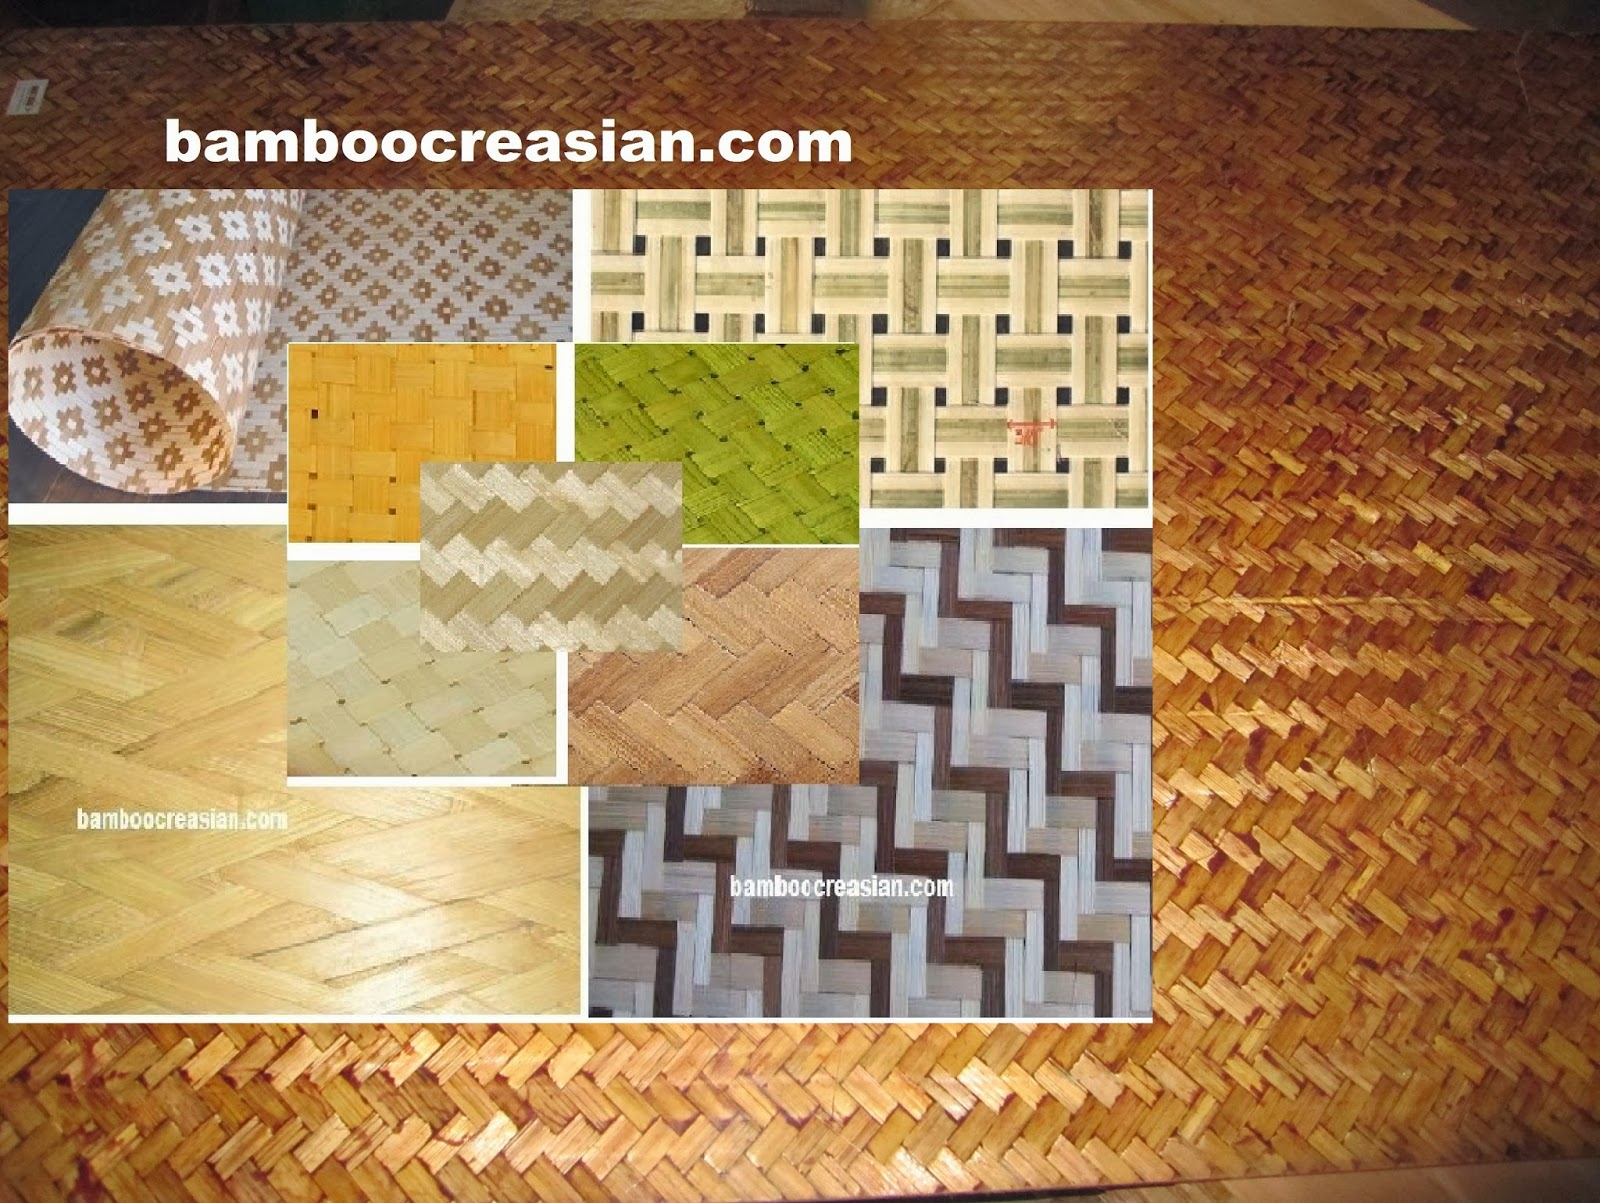 Rolled Bamboo Fences| Bamboo Fencing| Big Bamboo Poles| Bamboo Wall ...